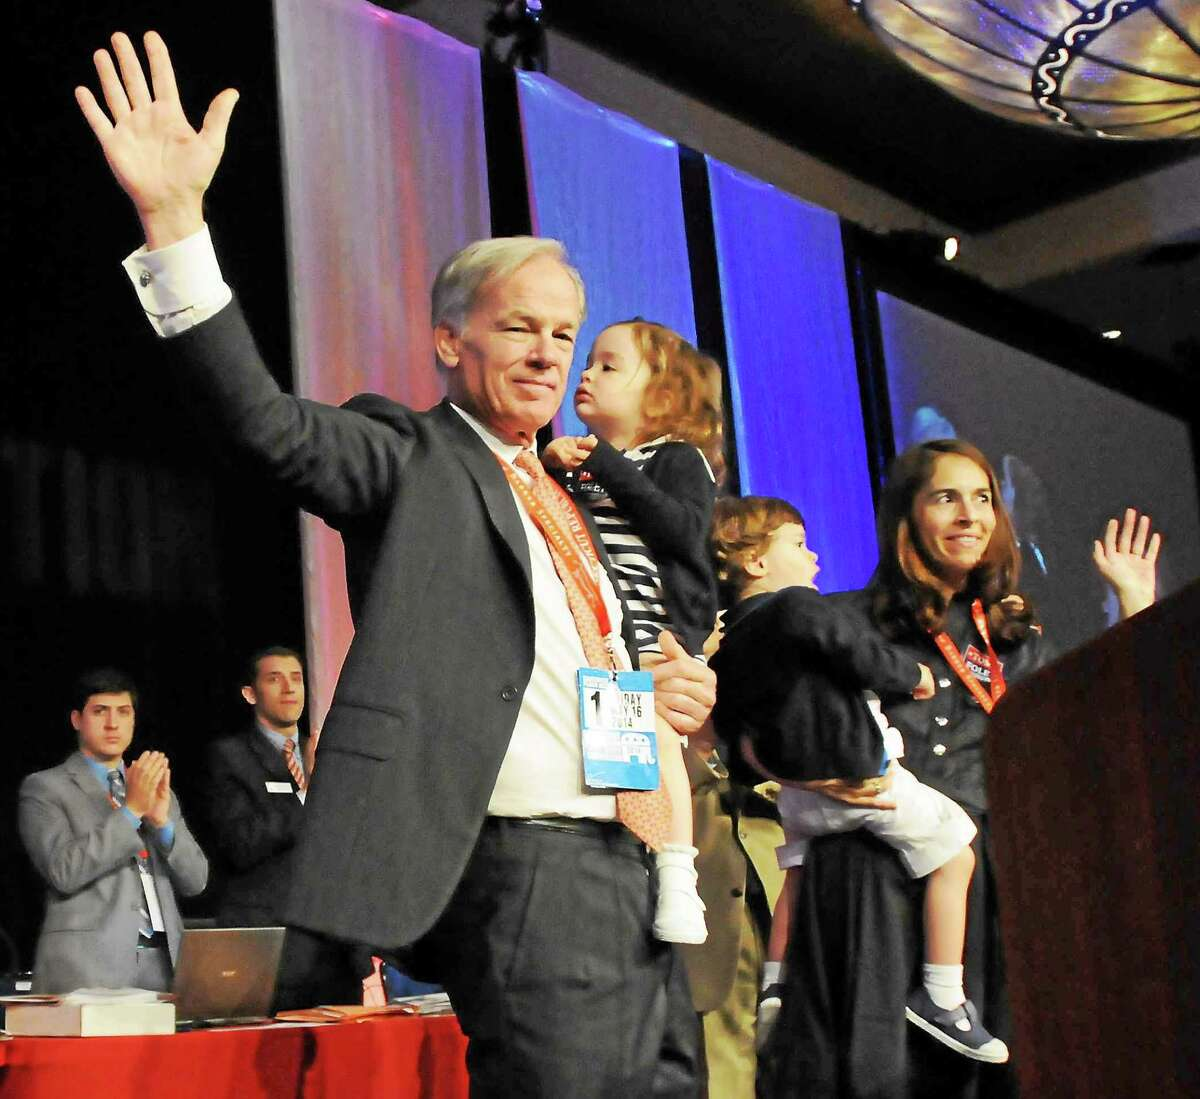 Tom Foley gets the Republican nomination for governor, as he waves holding his daughter Grace during the 2014 Connecticut Republican State Convention at the Mohegan Sun Convention Center in Uncasville Friday. On the right, his wife Leslie holds their son Reed.